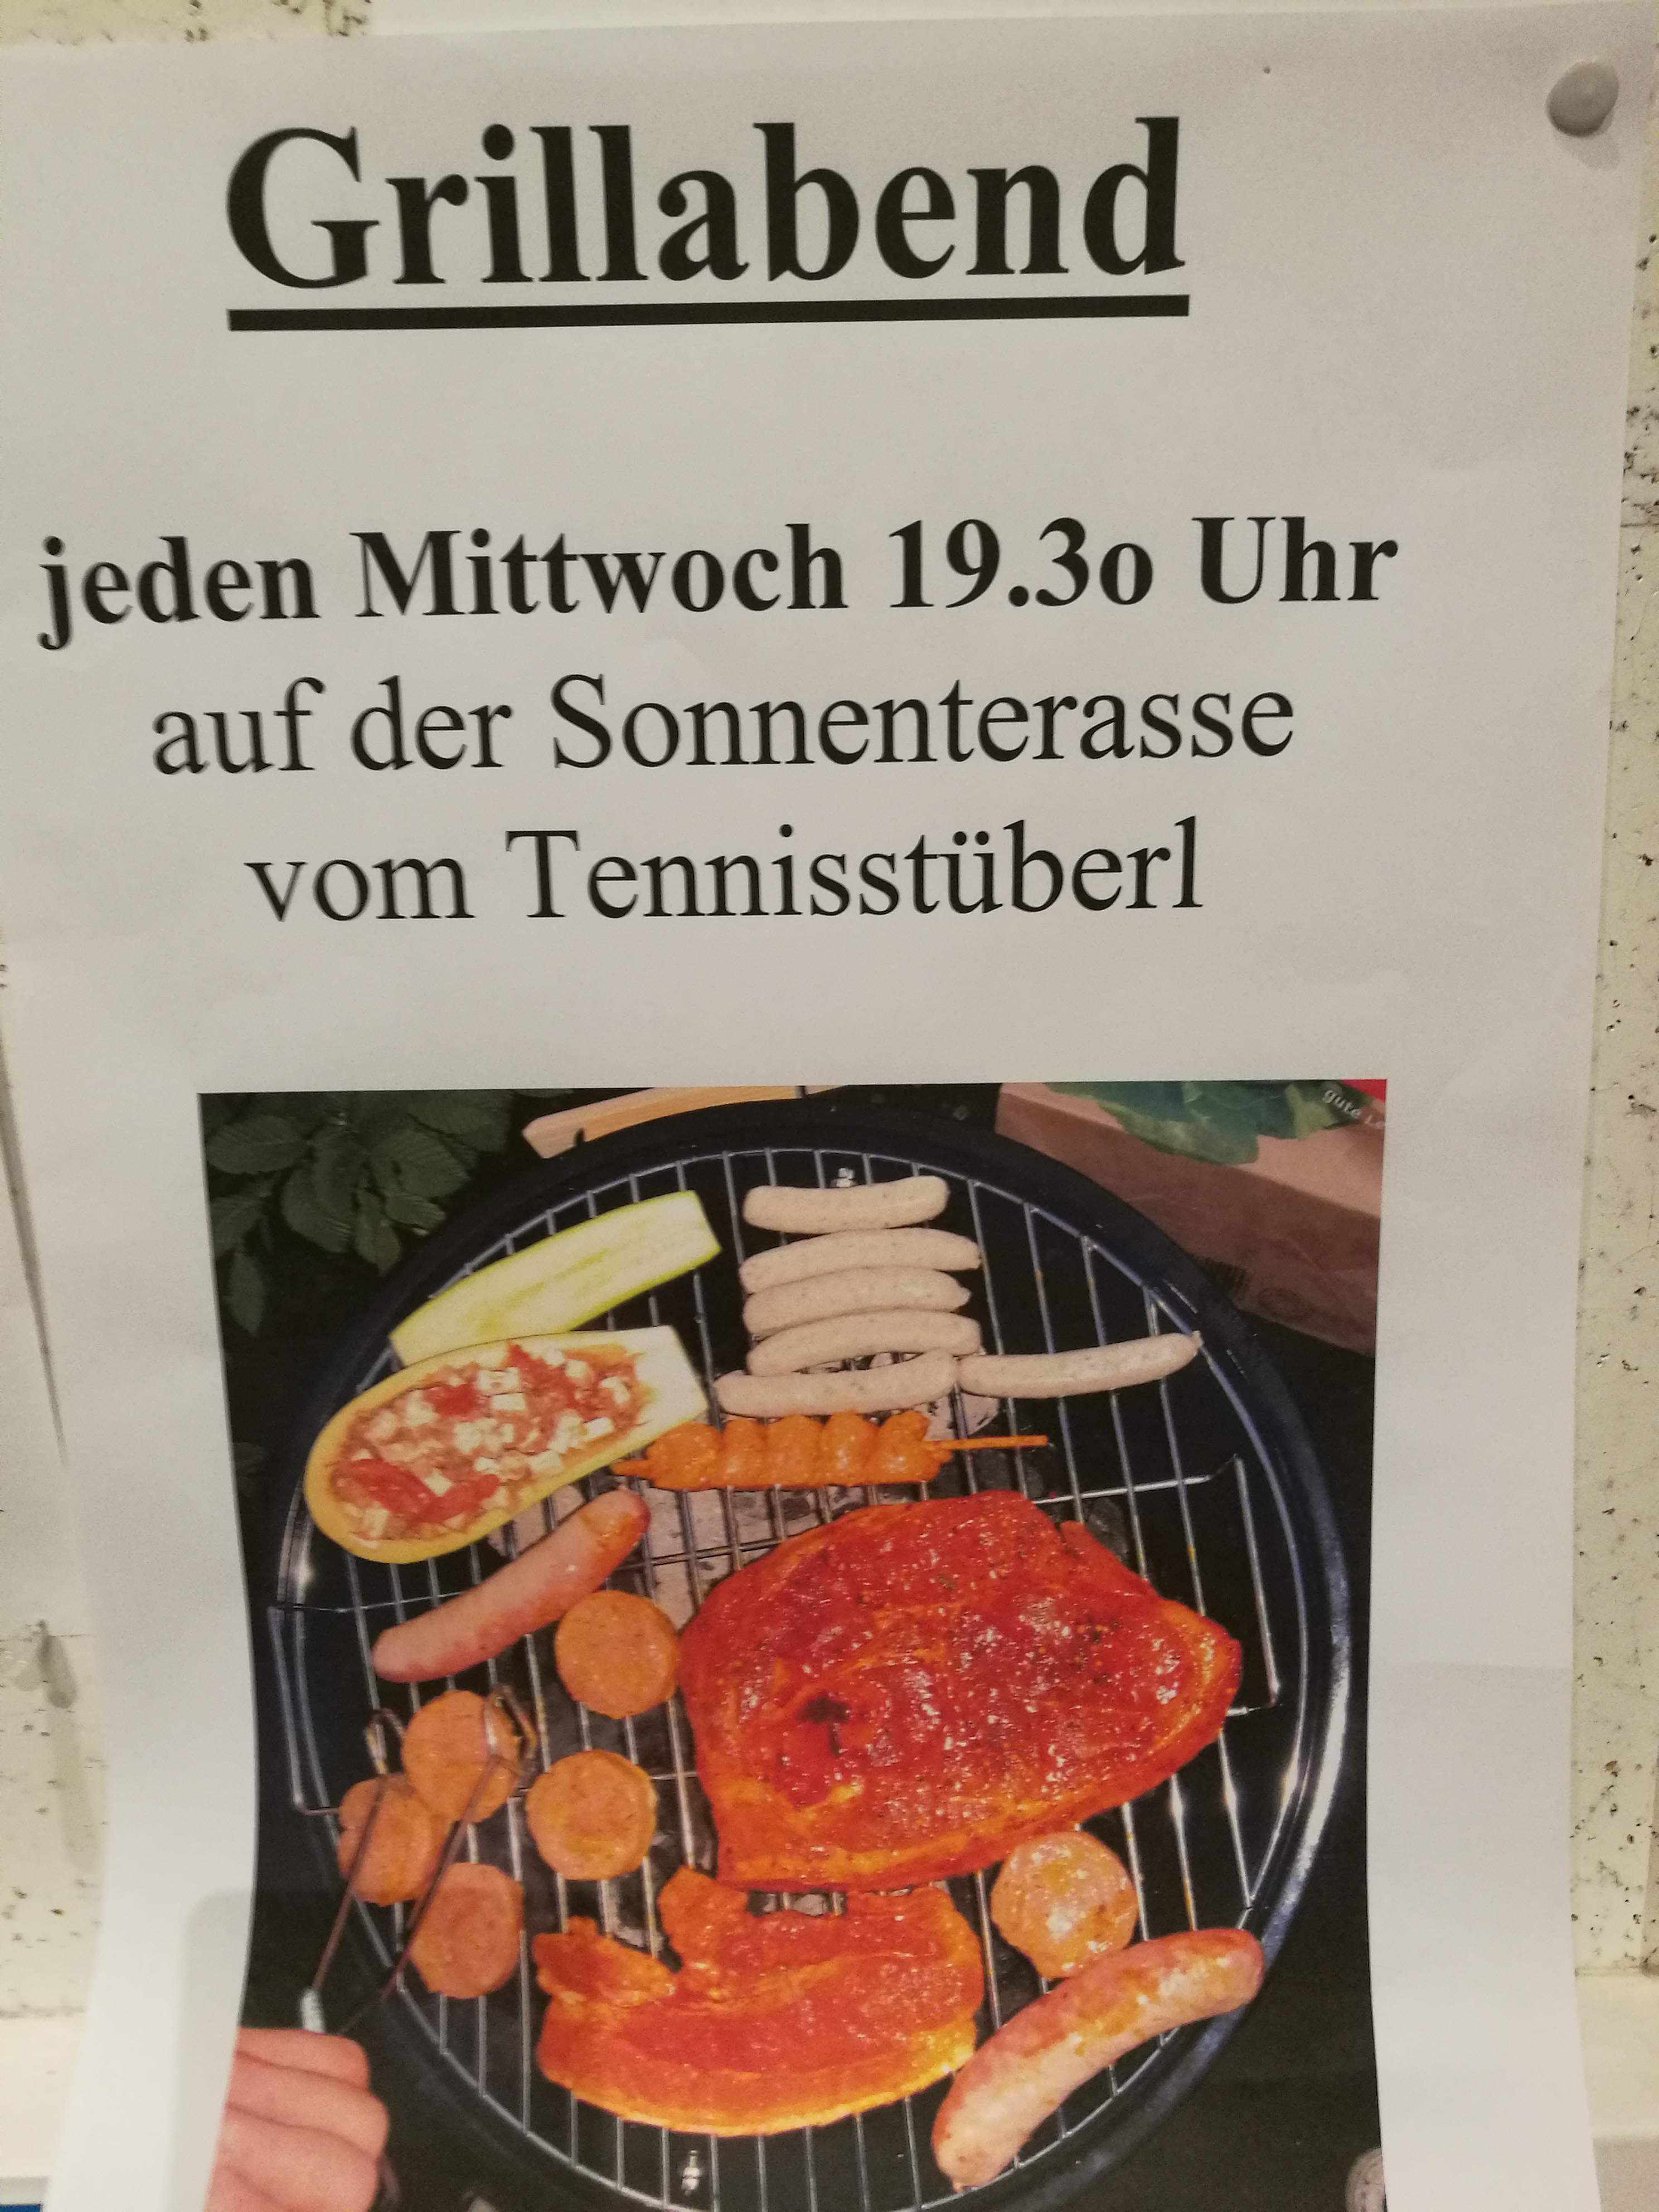 images/Grillabend 2017.jpg